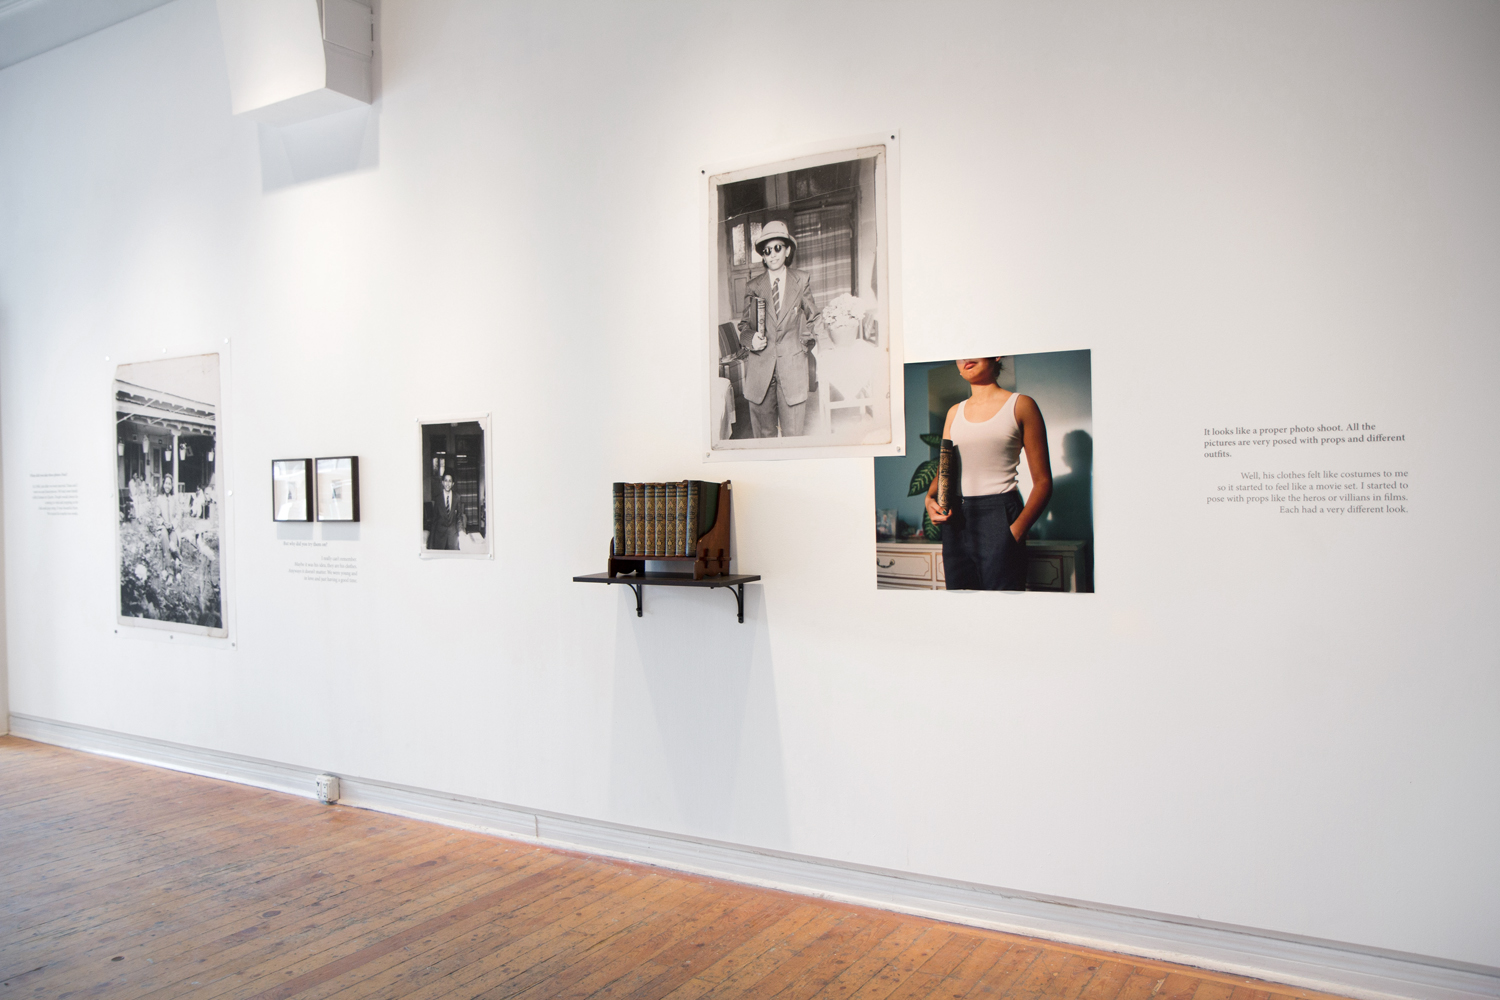 Installation View from solo show at Ryerson Artspace at the Gladstone Hotel, Toronto 2017. Photo courtesy of the artist.